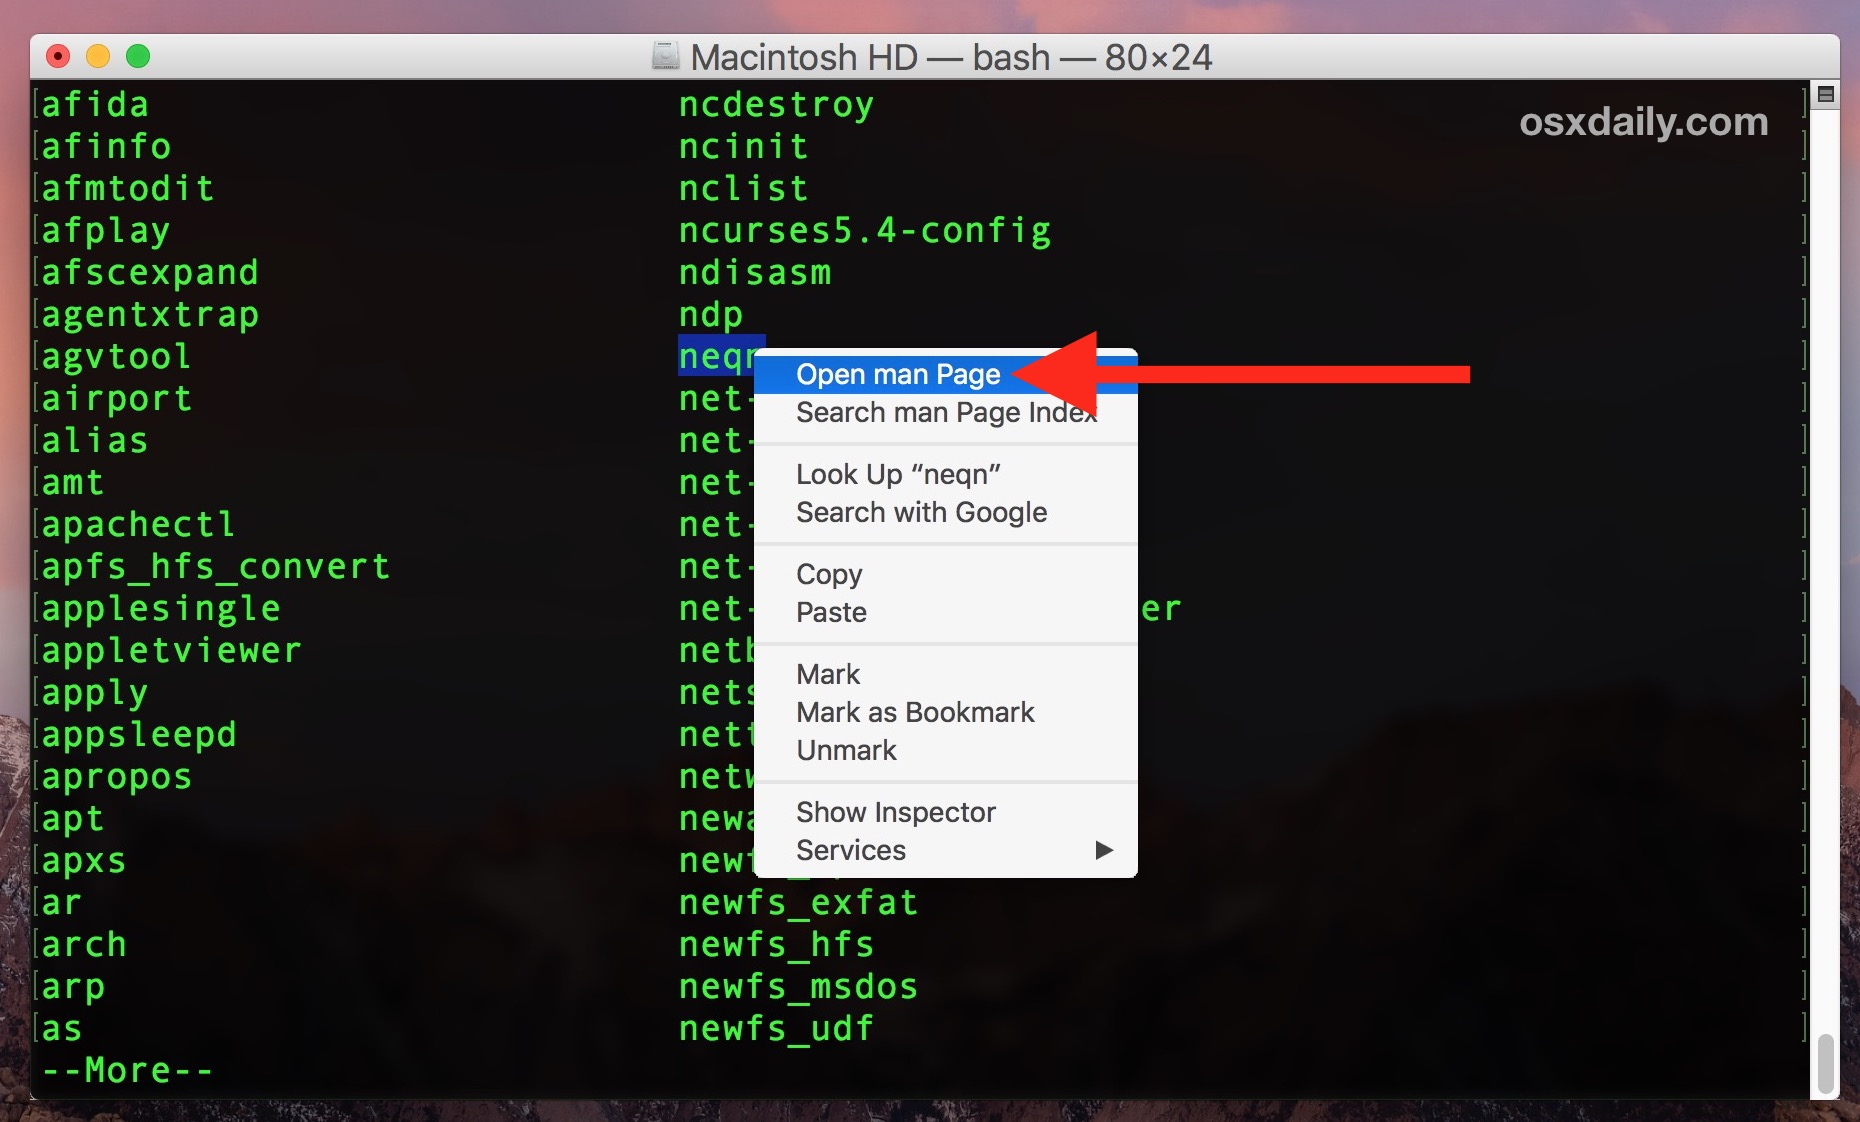 Show info about a specific terminal command